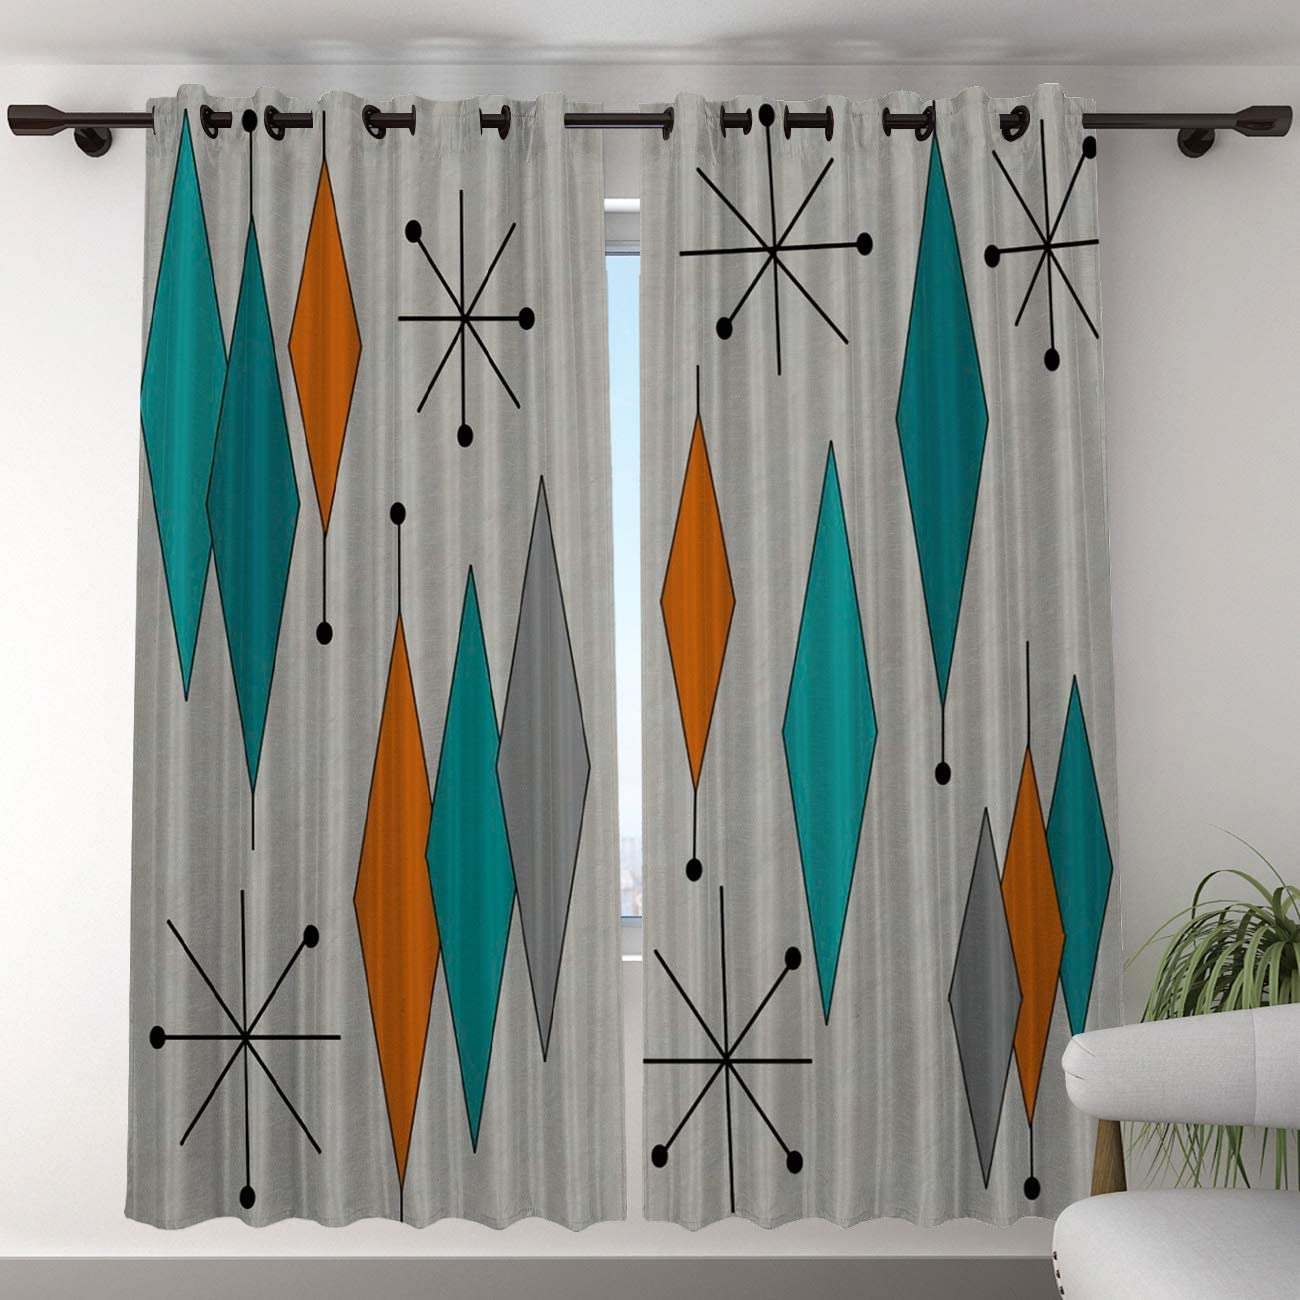 T H Home Blackout Curtain for Bedroom – 96 inch Long Darkening Draperies Curtains – Mid-Century Modern Diamond Pattern Window Treatment Curtain Drapes for Living Room Diningroom